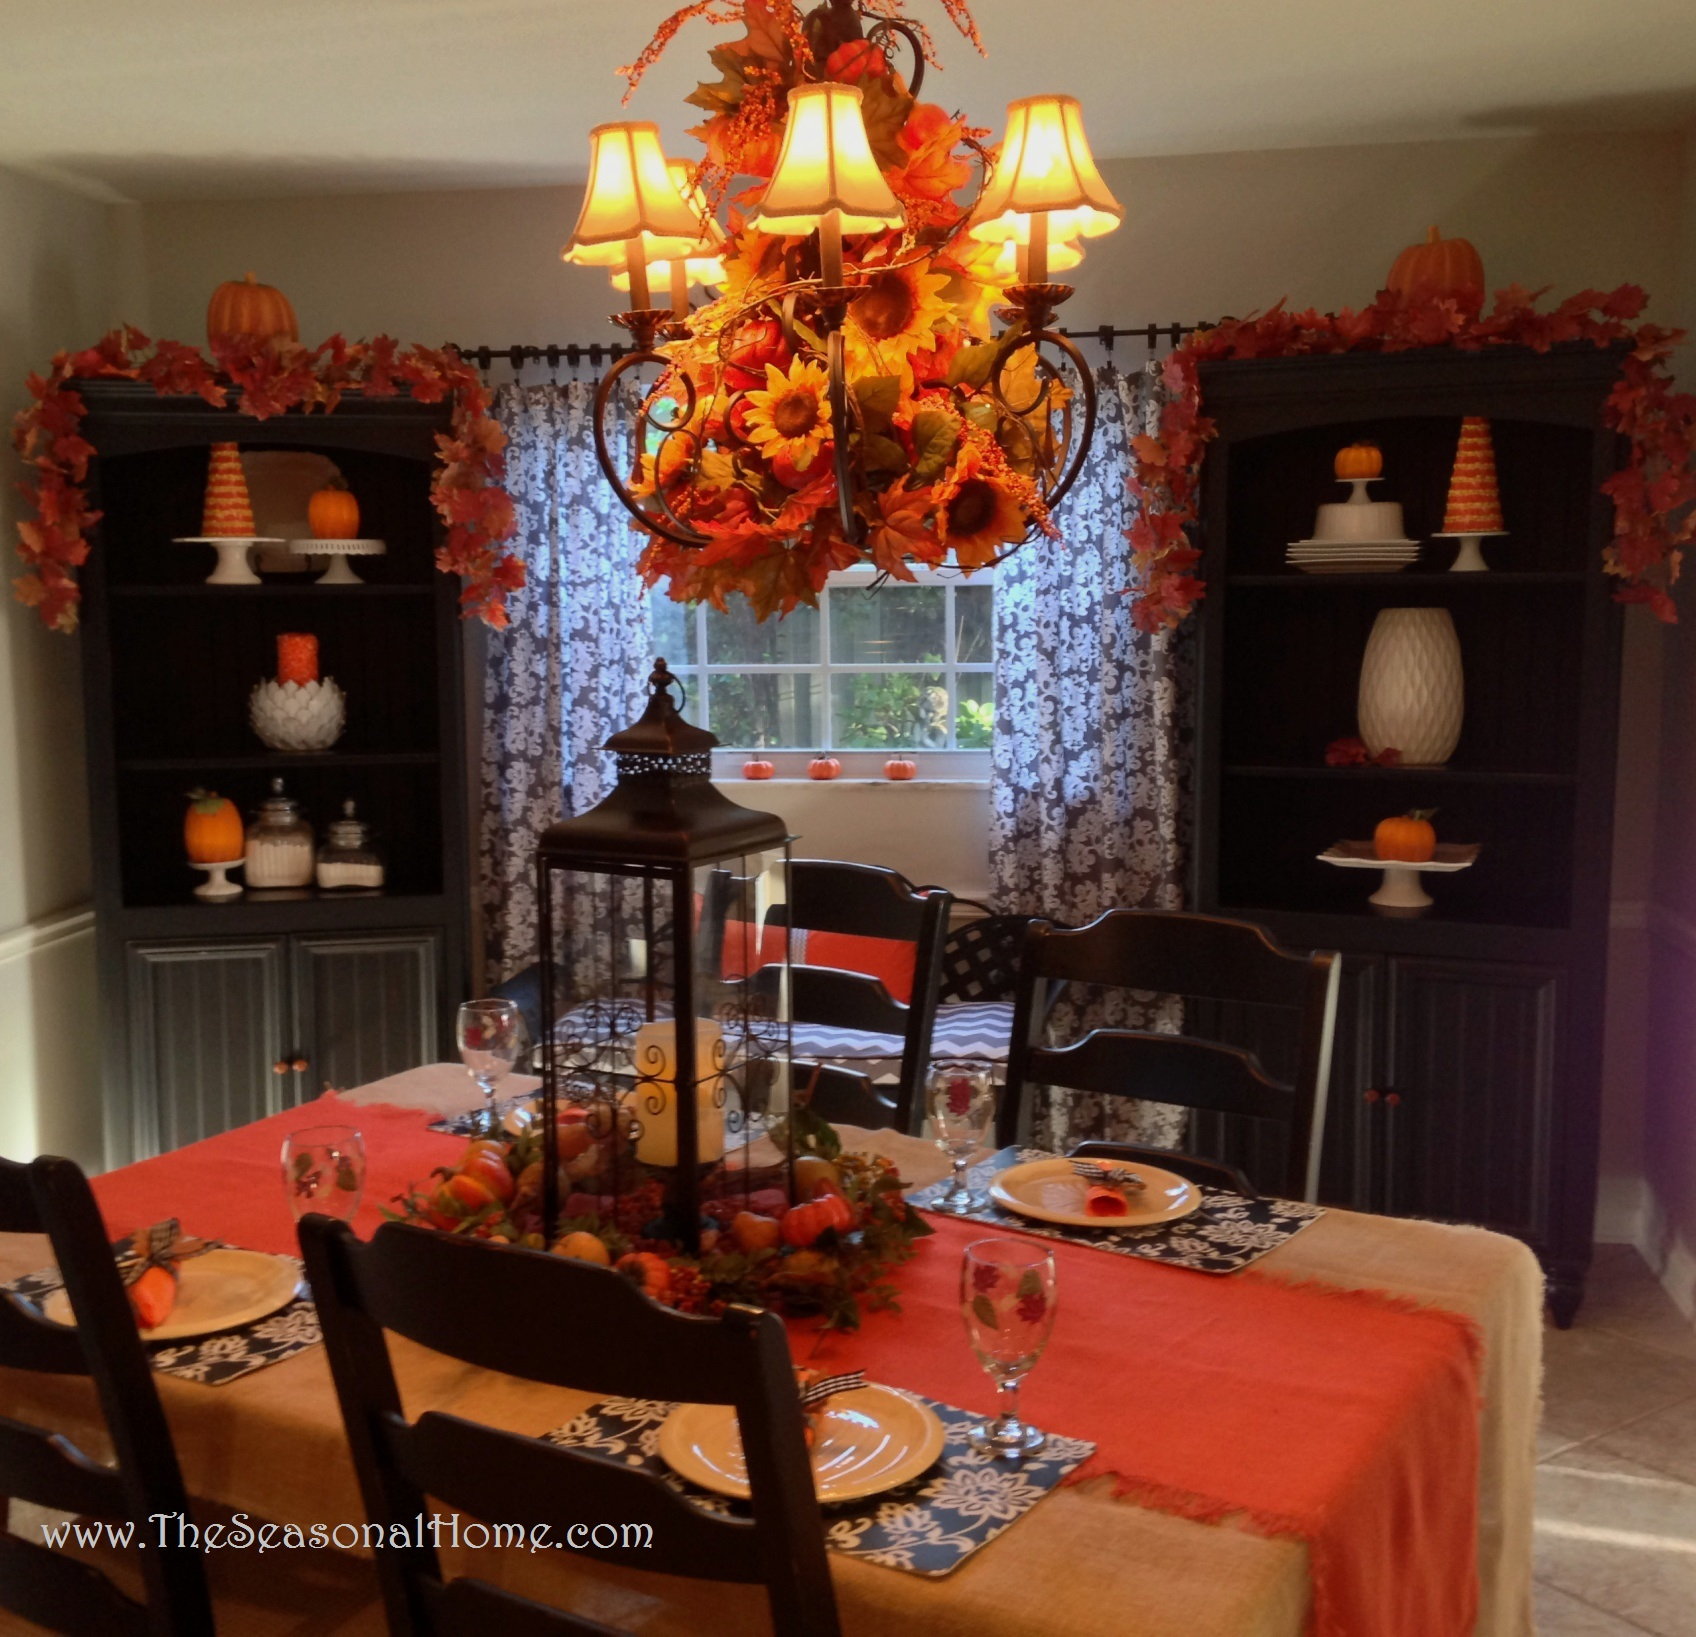 Little Decor Ideas To Make At Home: 3 Chandelier Ideas For: Fall, Halloween & Thanksgiving